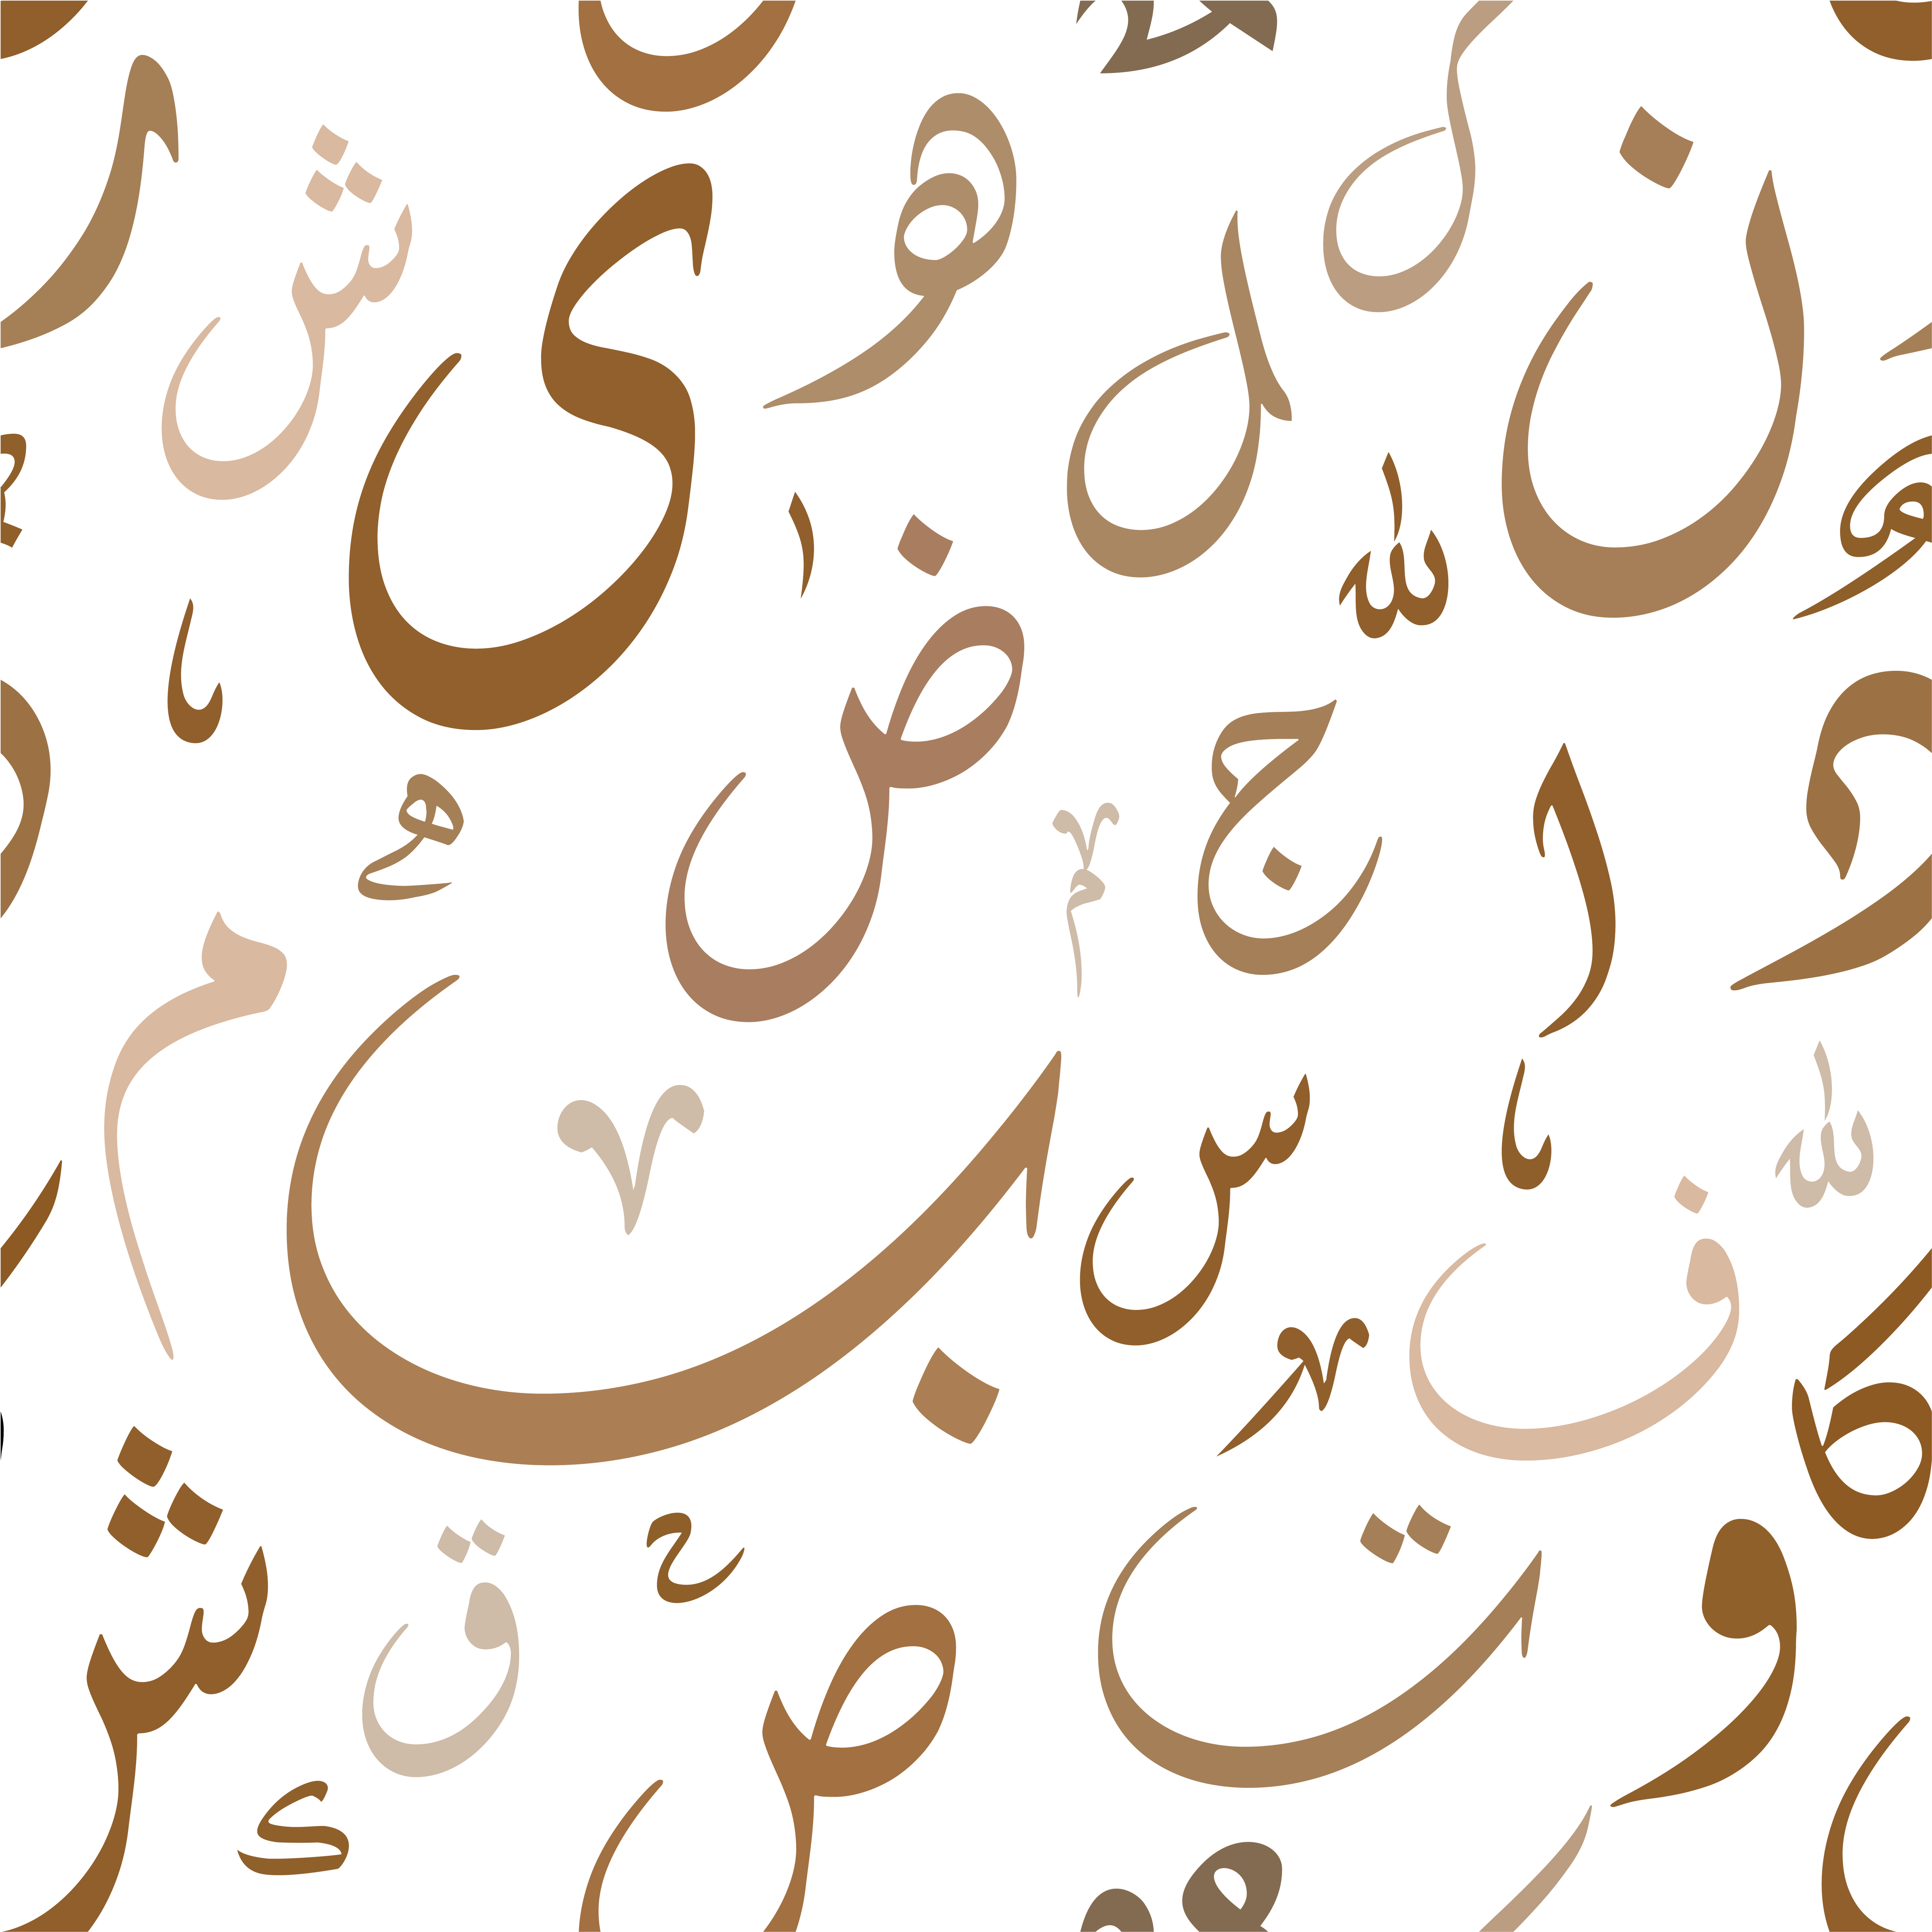 Arabic mnemonics and Arabic reading without knowing the Arabic alphabet is hard. How do you read Arabic letters? Click here.